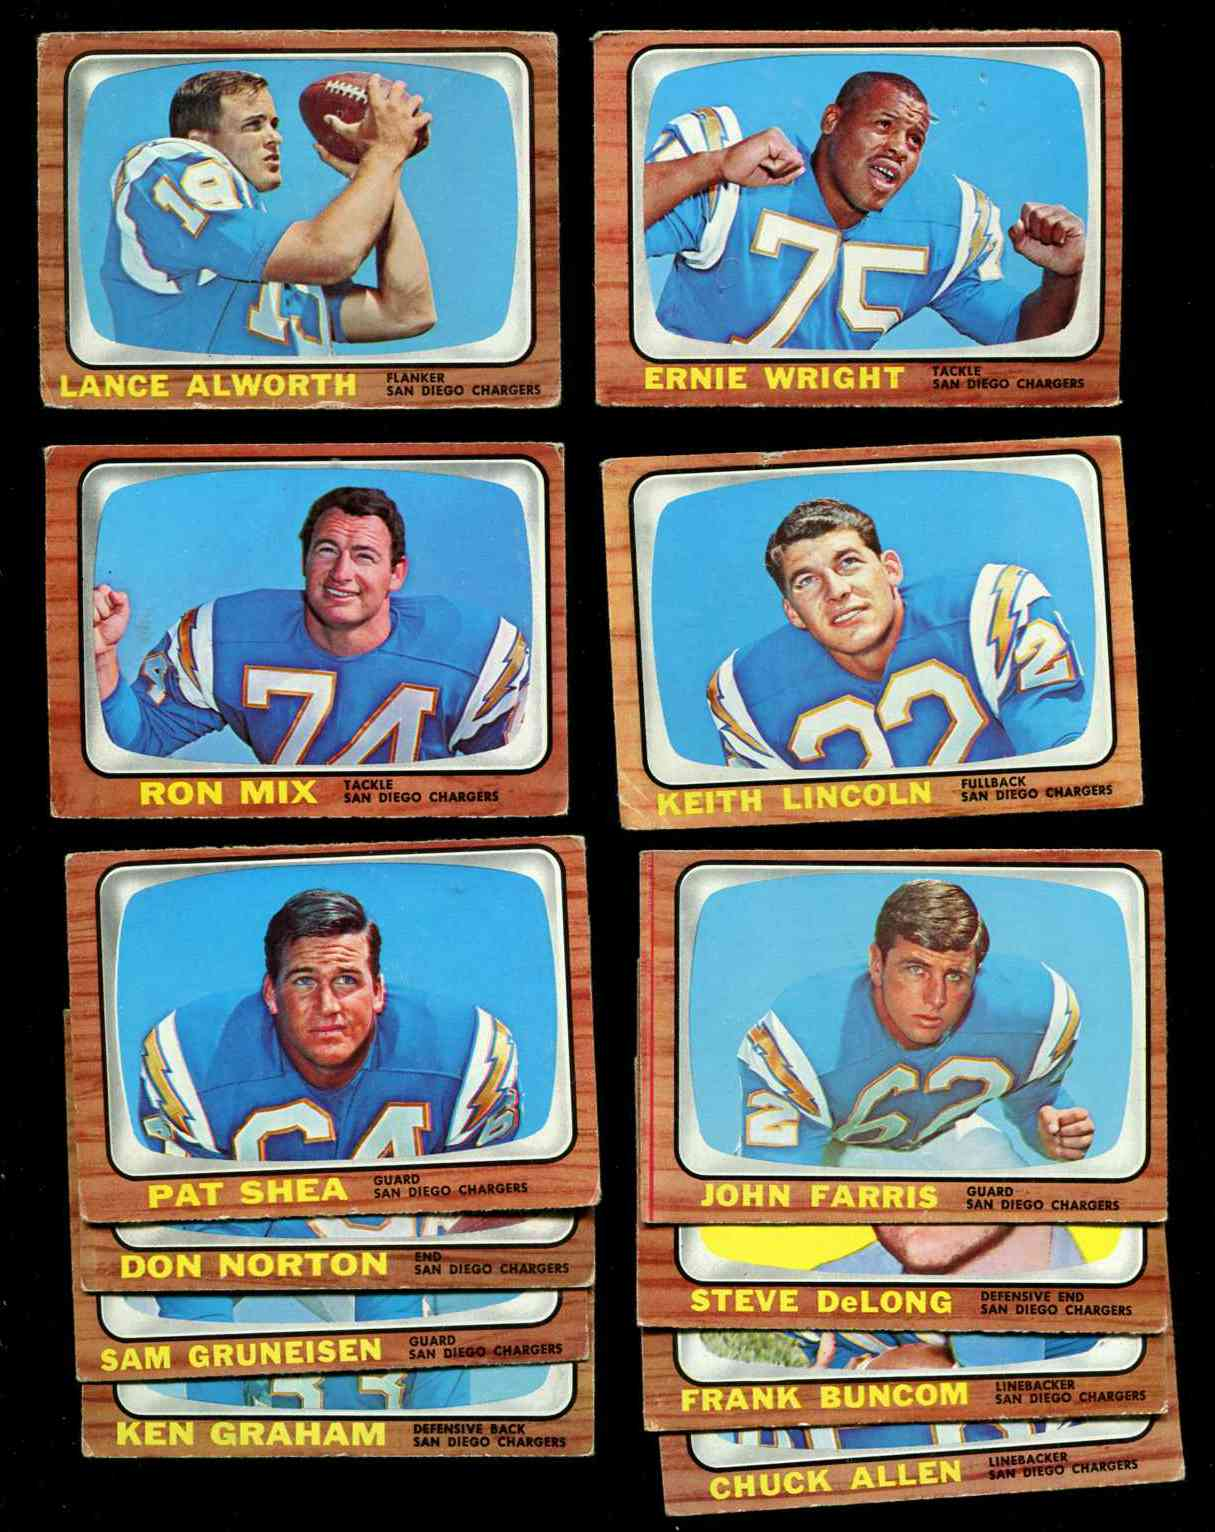 1966 Topps FB - SAN DIEGO CHARGERS Team Lot (12) cards [#z] w/Keith Lincoln Football cards value